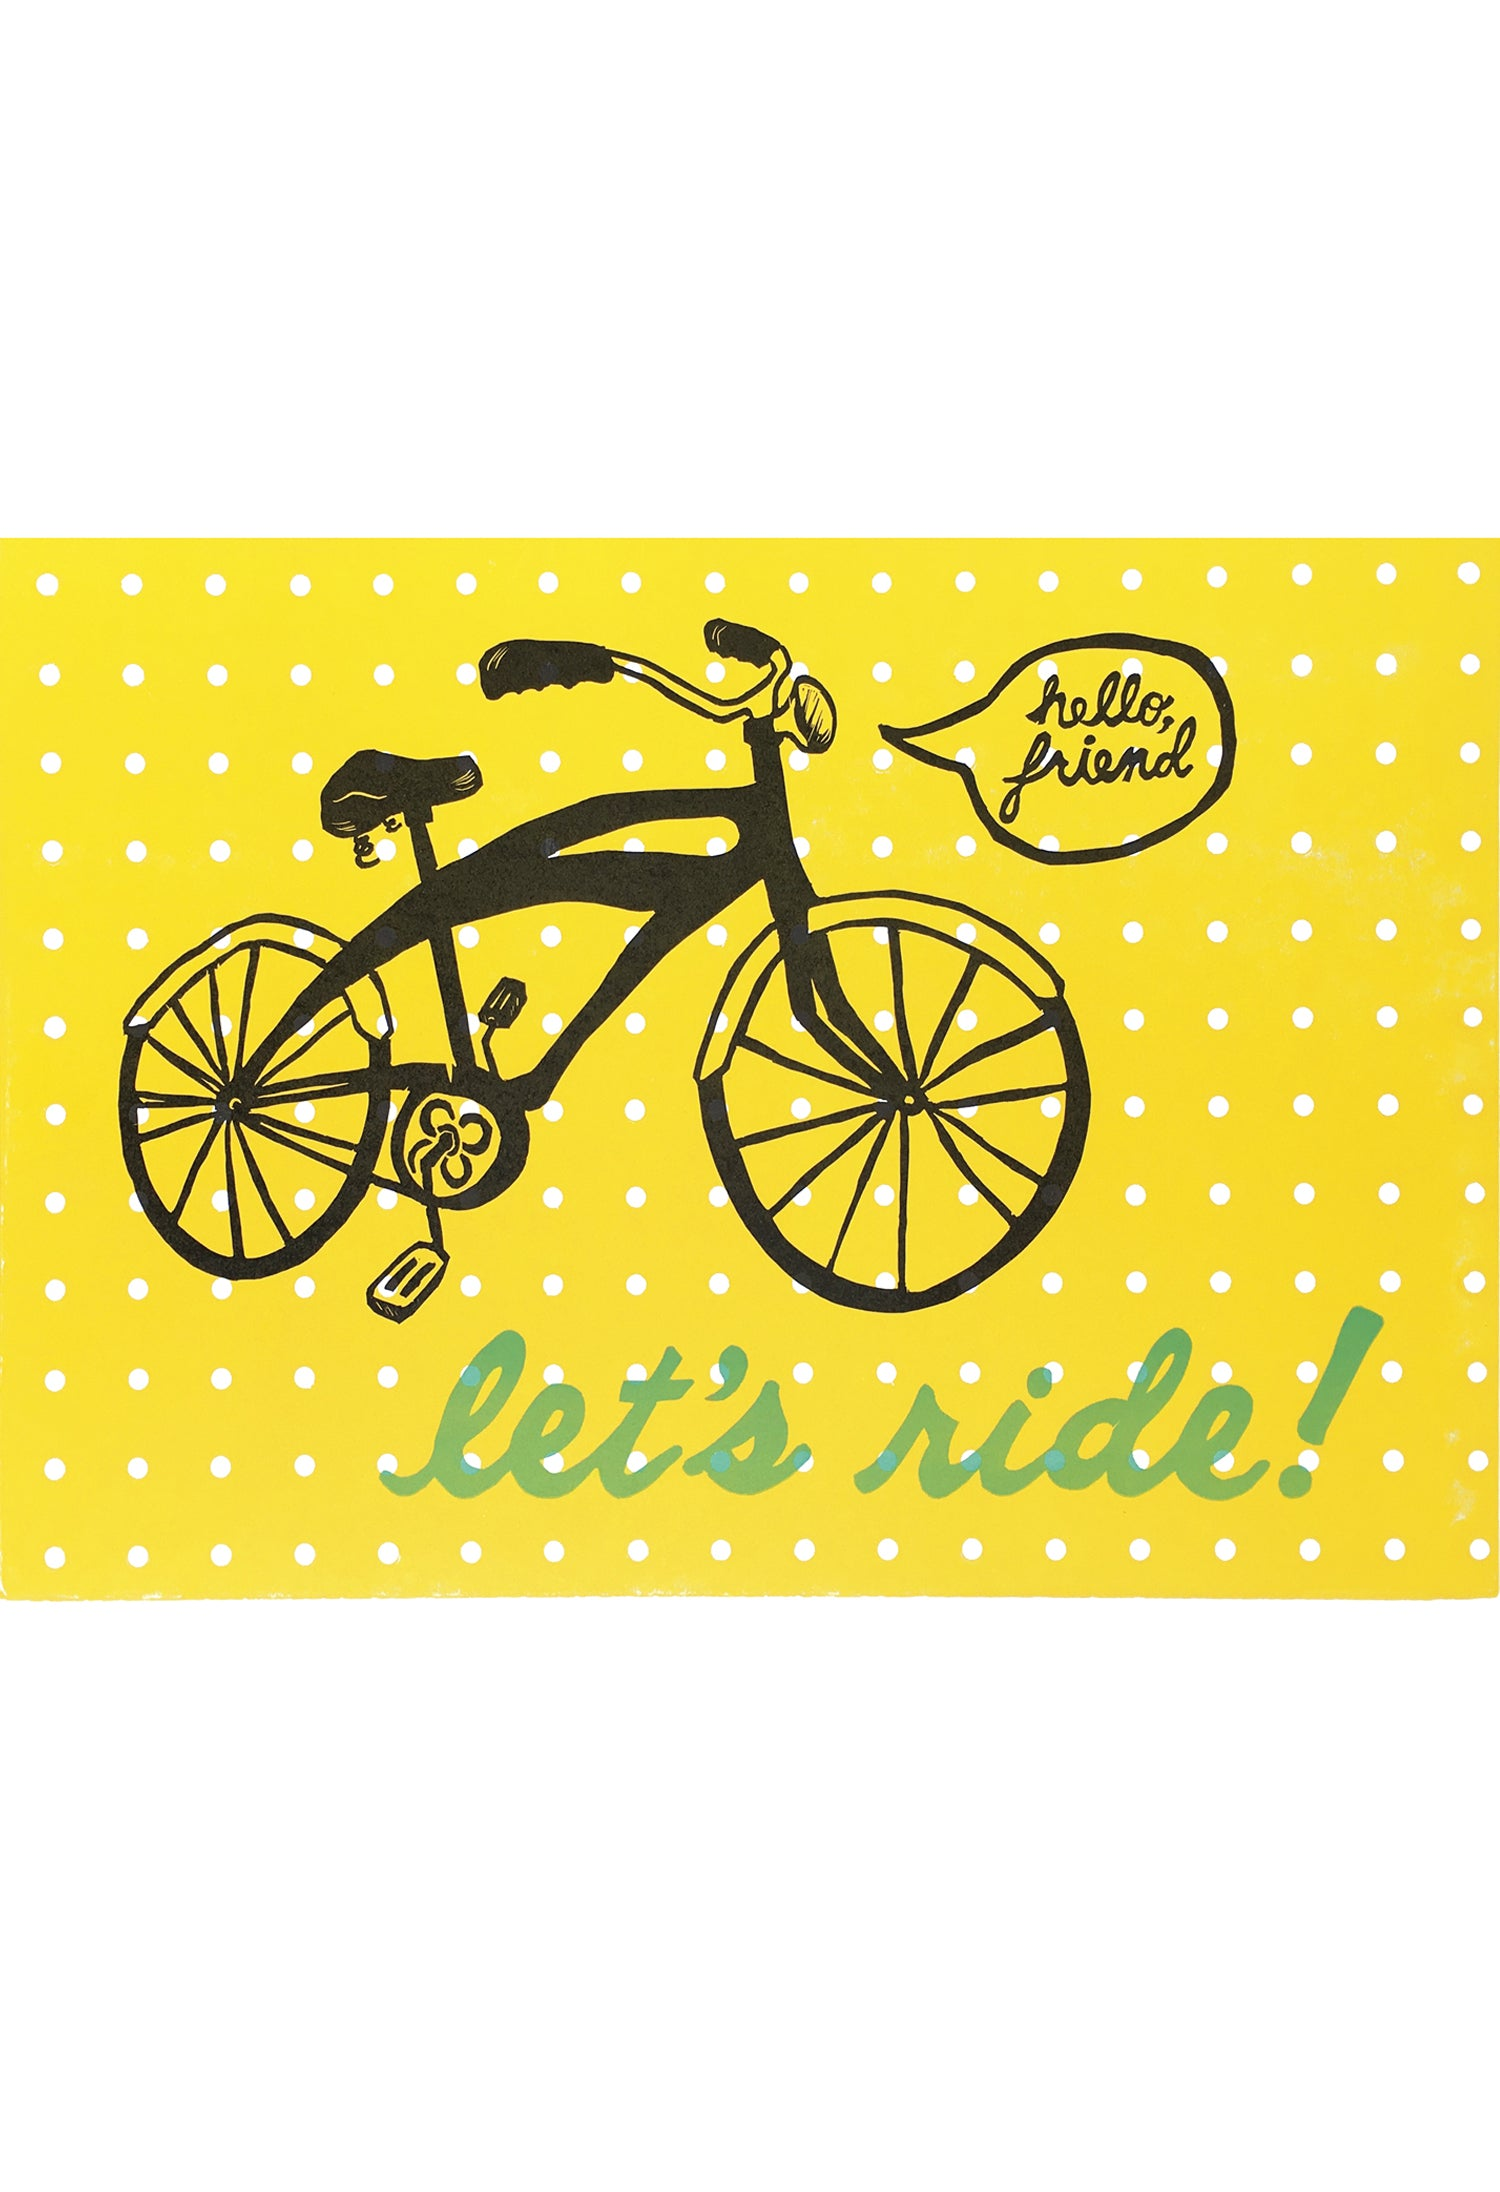 Hello Friend Lets Ride letterpress and linoleum yellow bicycle print